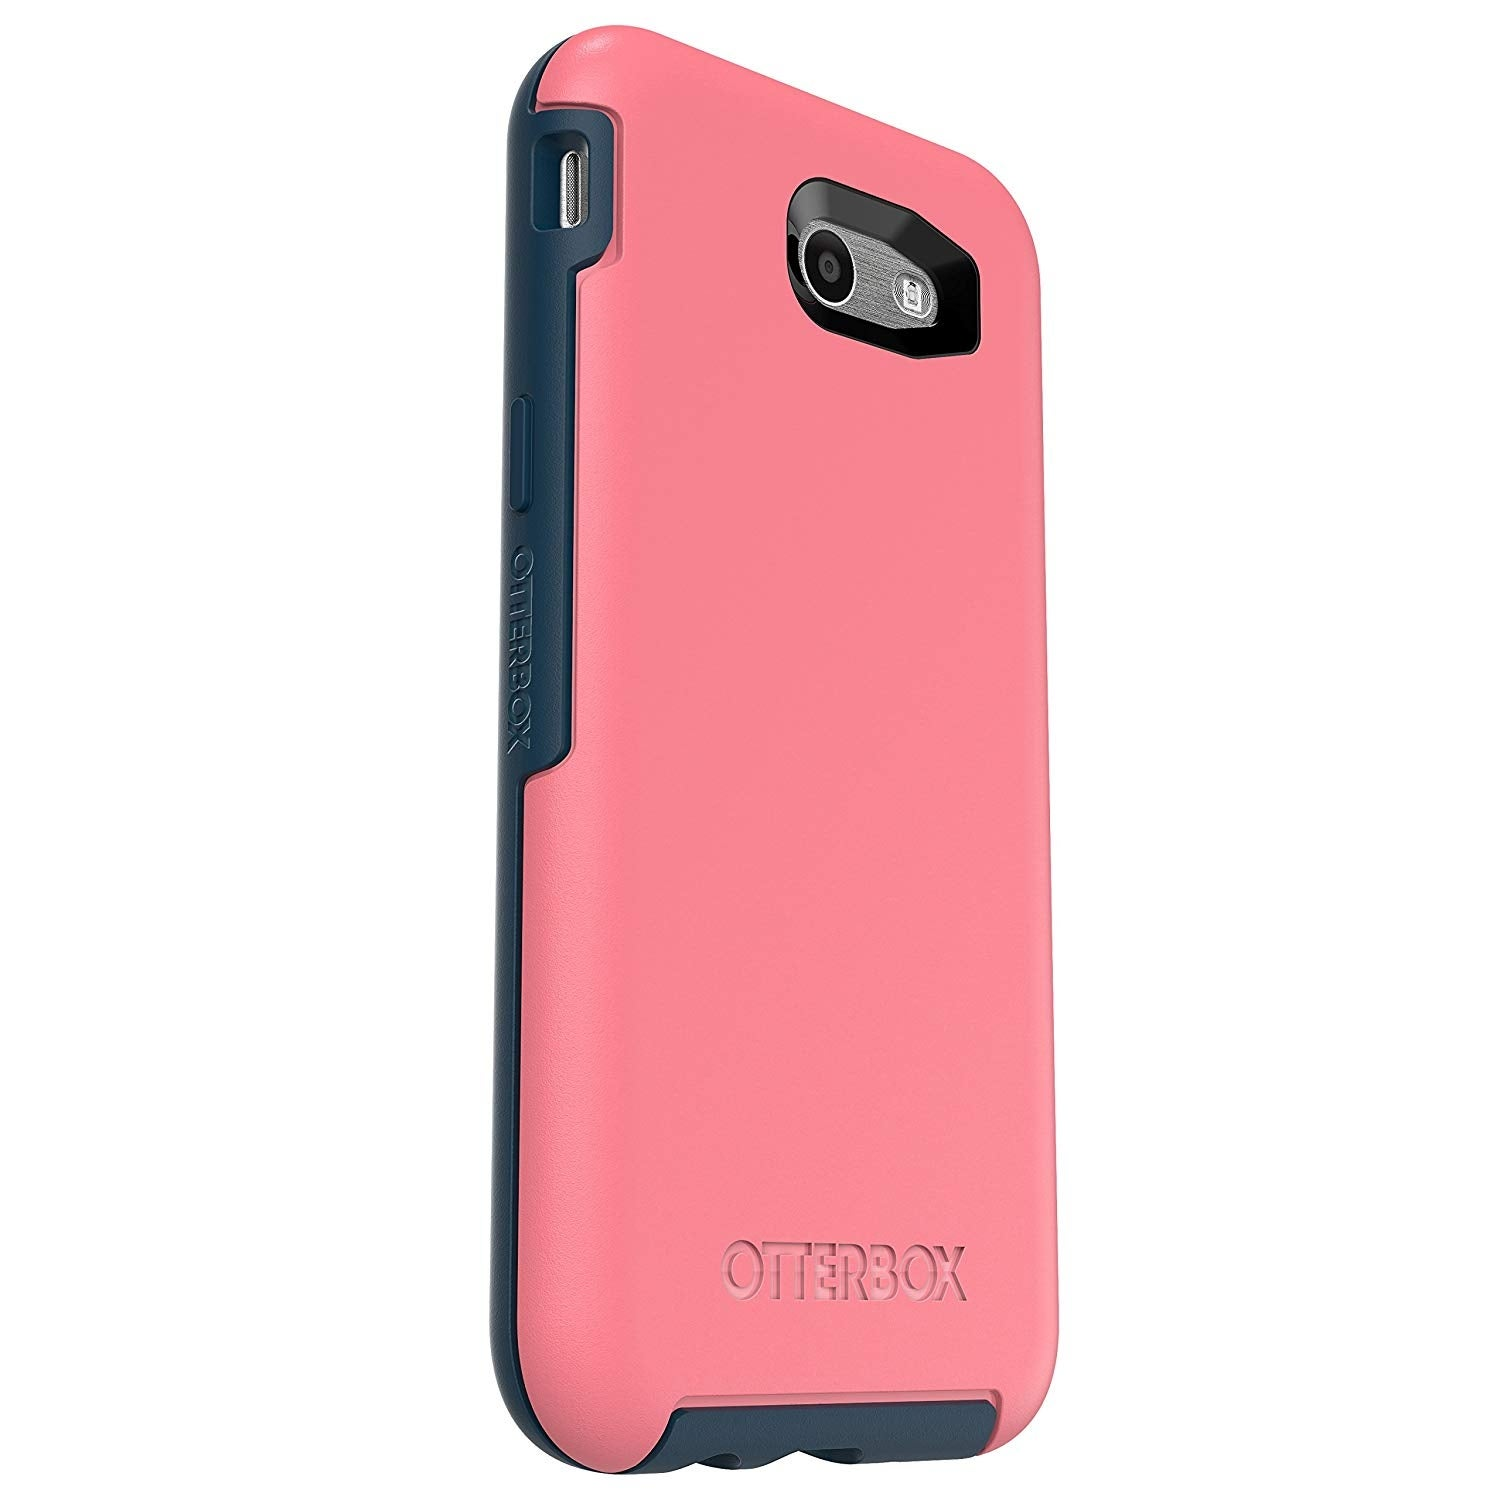 low priced ddbe7 5d90f OtterBox Symmetry Case for Samsung Galaxy J7 (2017) - Saltwater Taffy  (Pipeline Pink/ Blazer Blue)